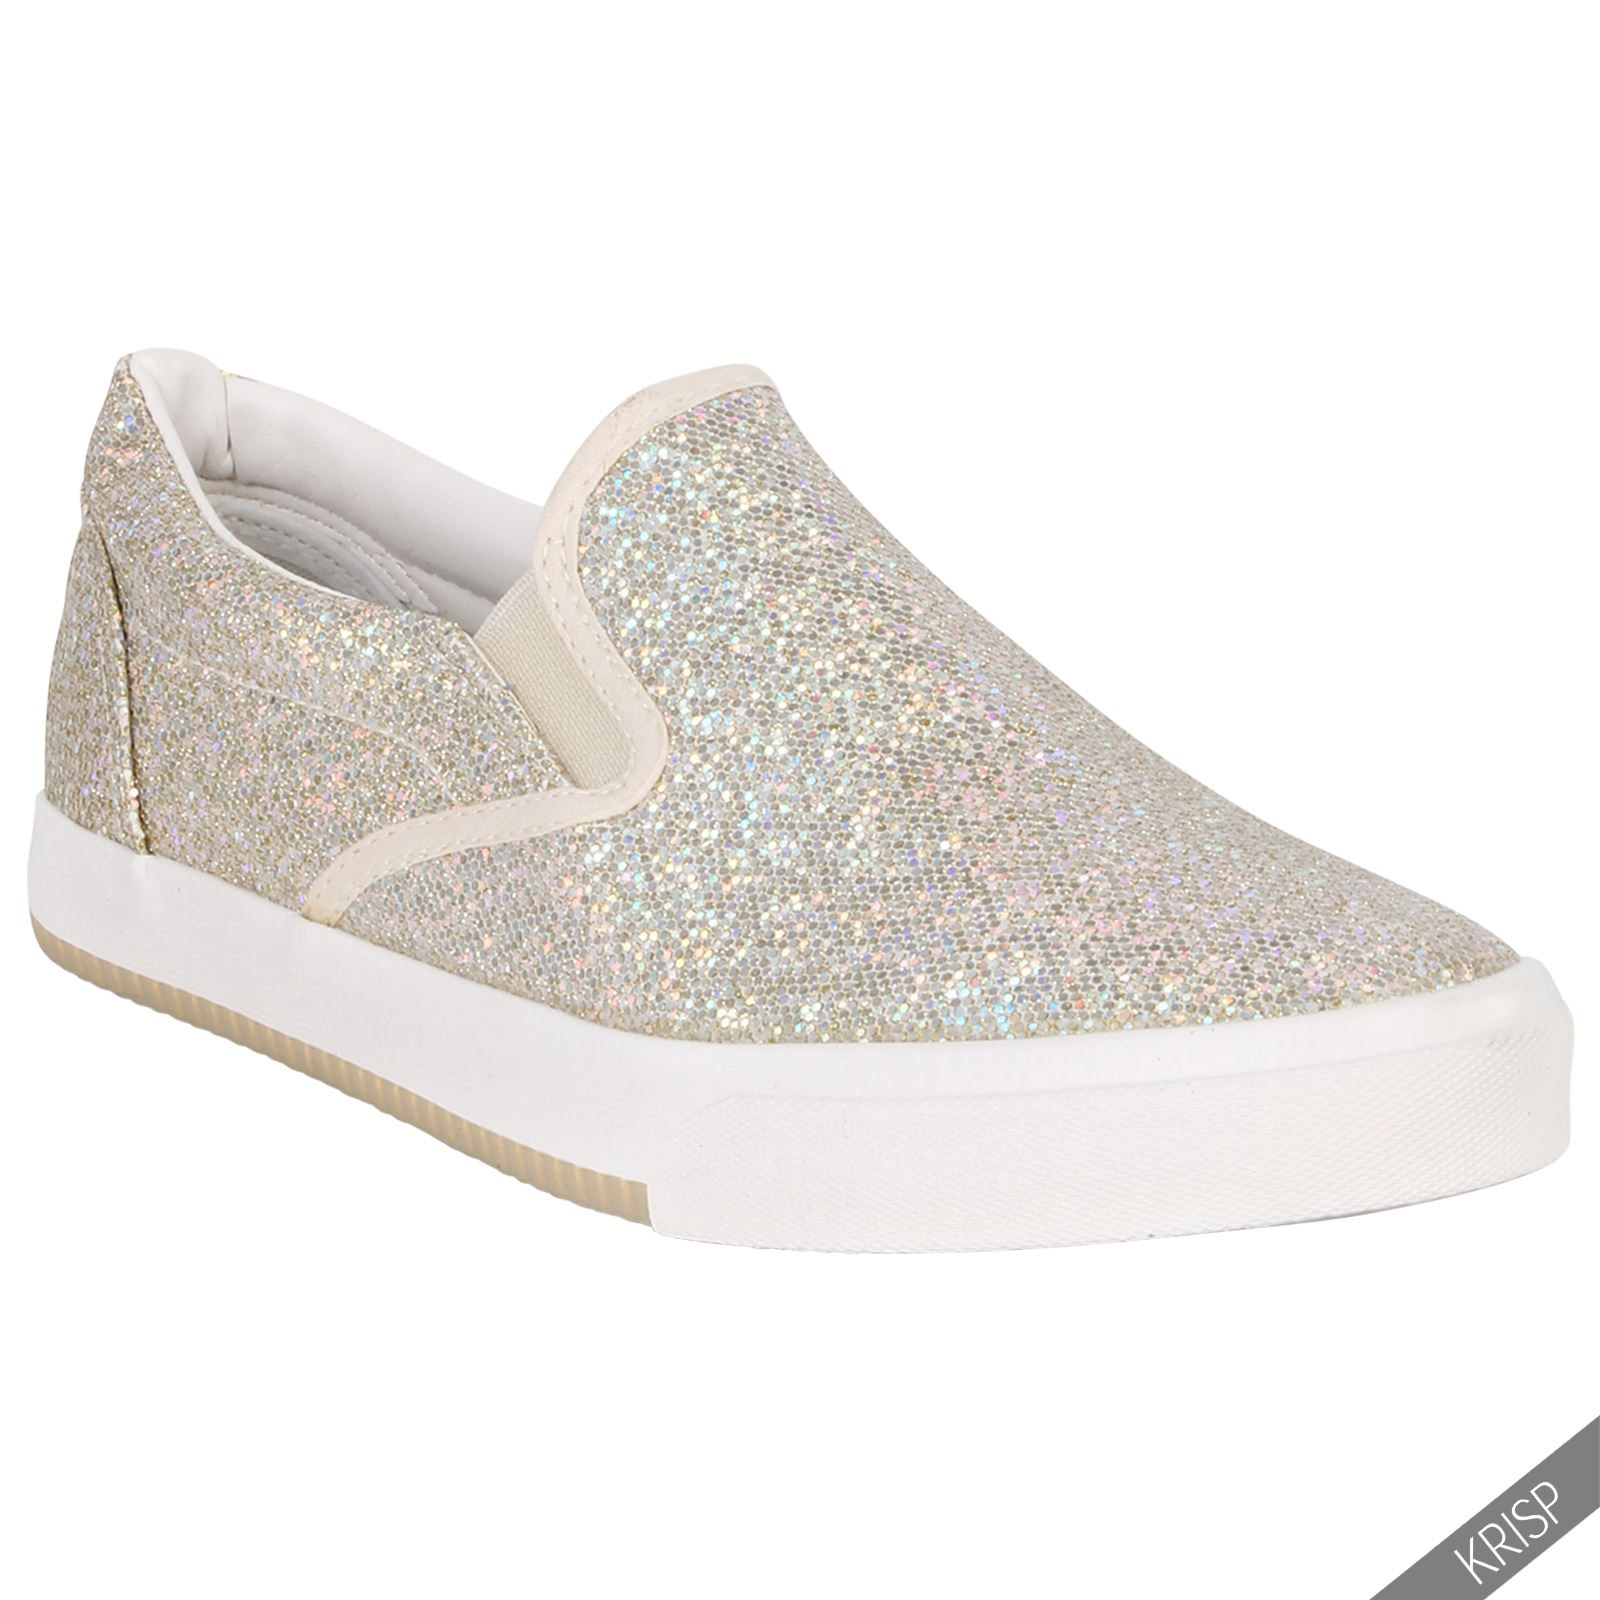 damen glitter fashion skater schuhe slipper sneaker turnschuhe glitzer metallic ebay. Black Bedroom Furniture Sets. Home Design Ideas